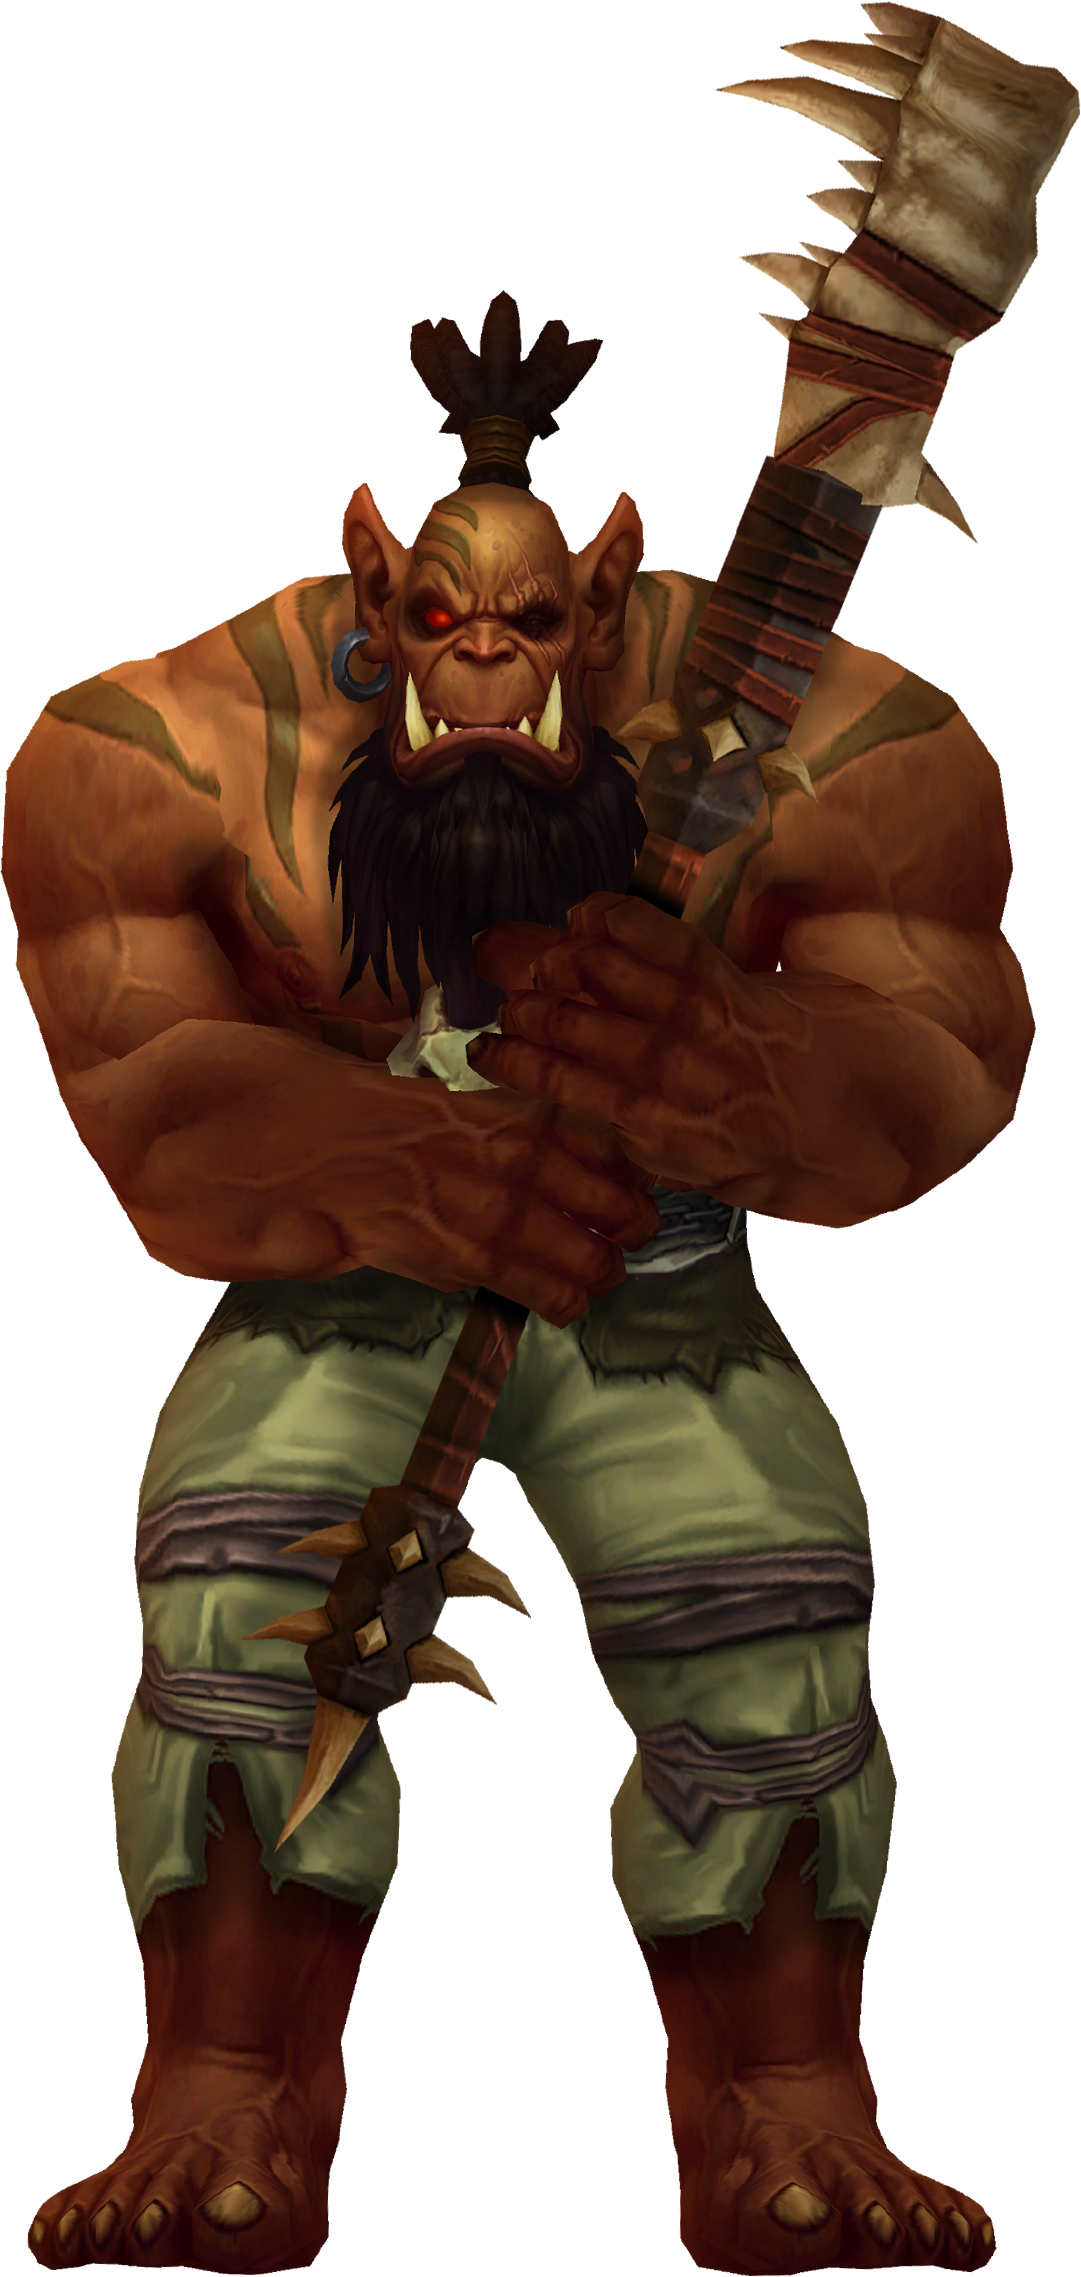 uploads orc orc PNG19 3